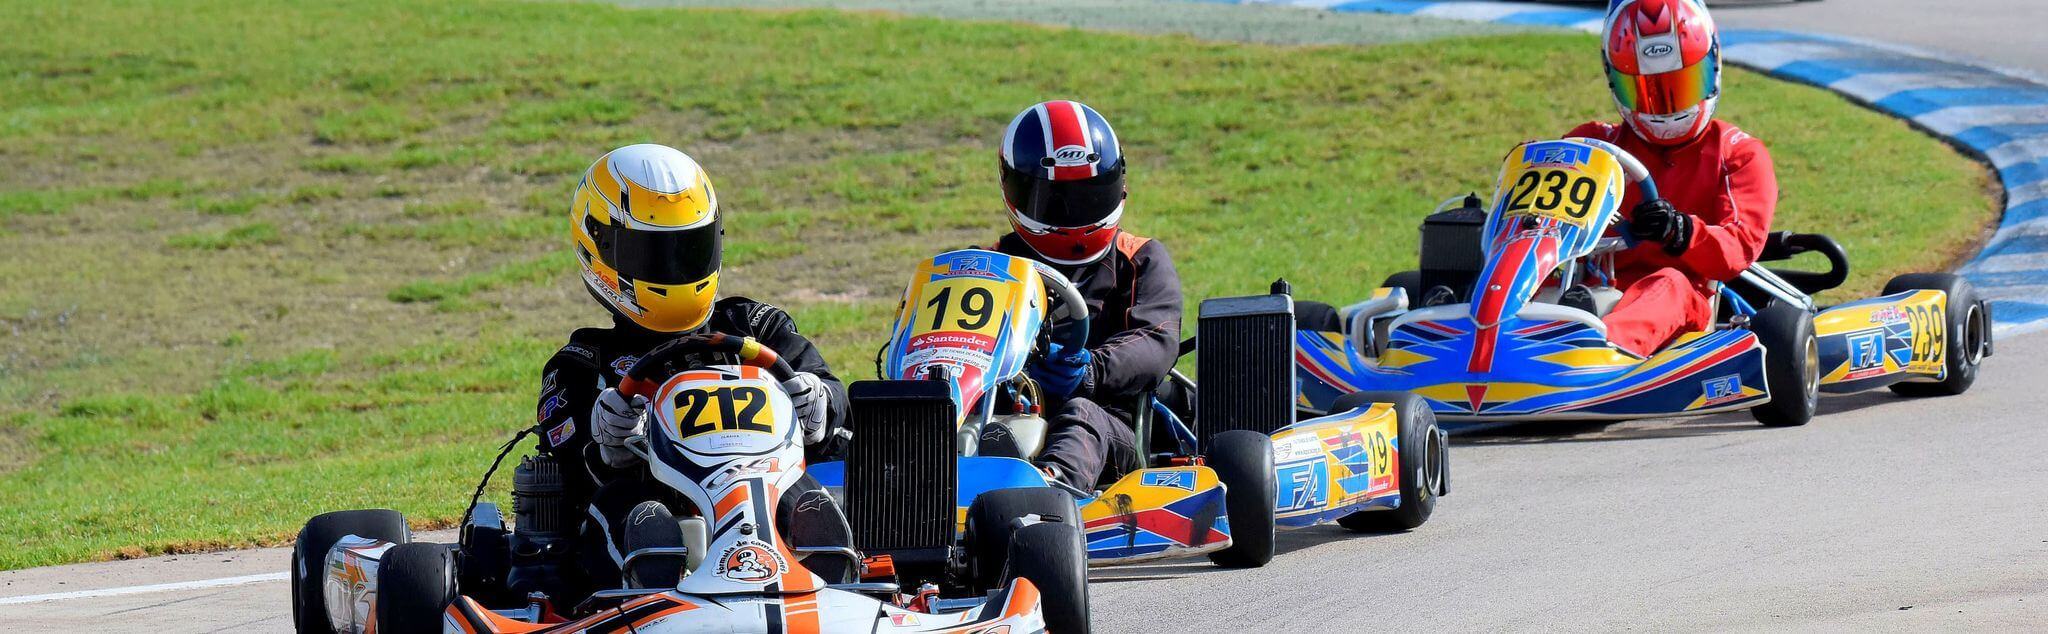 Karting in Torfaen